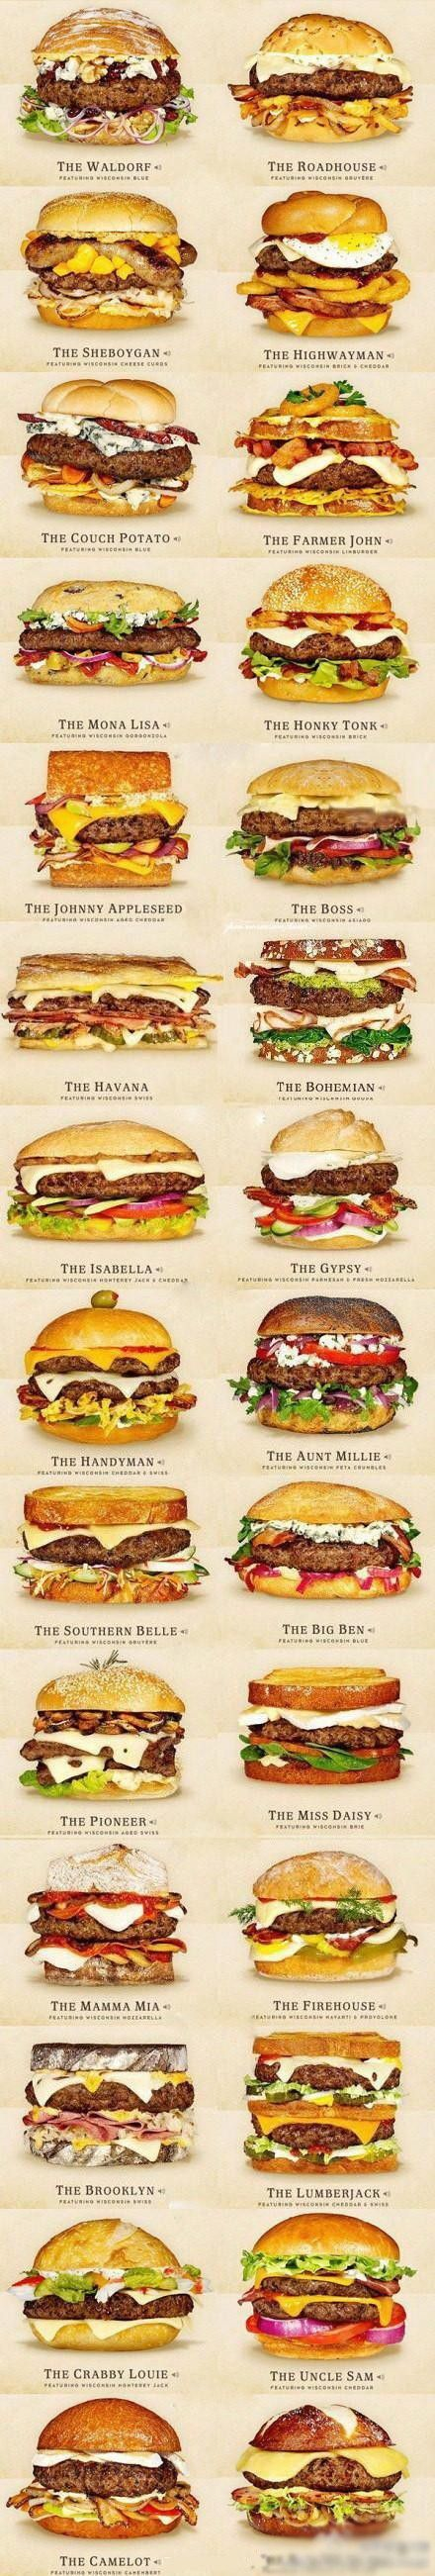 Cheeseburger Ideas. My mouth is watering.